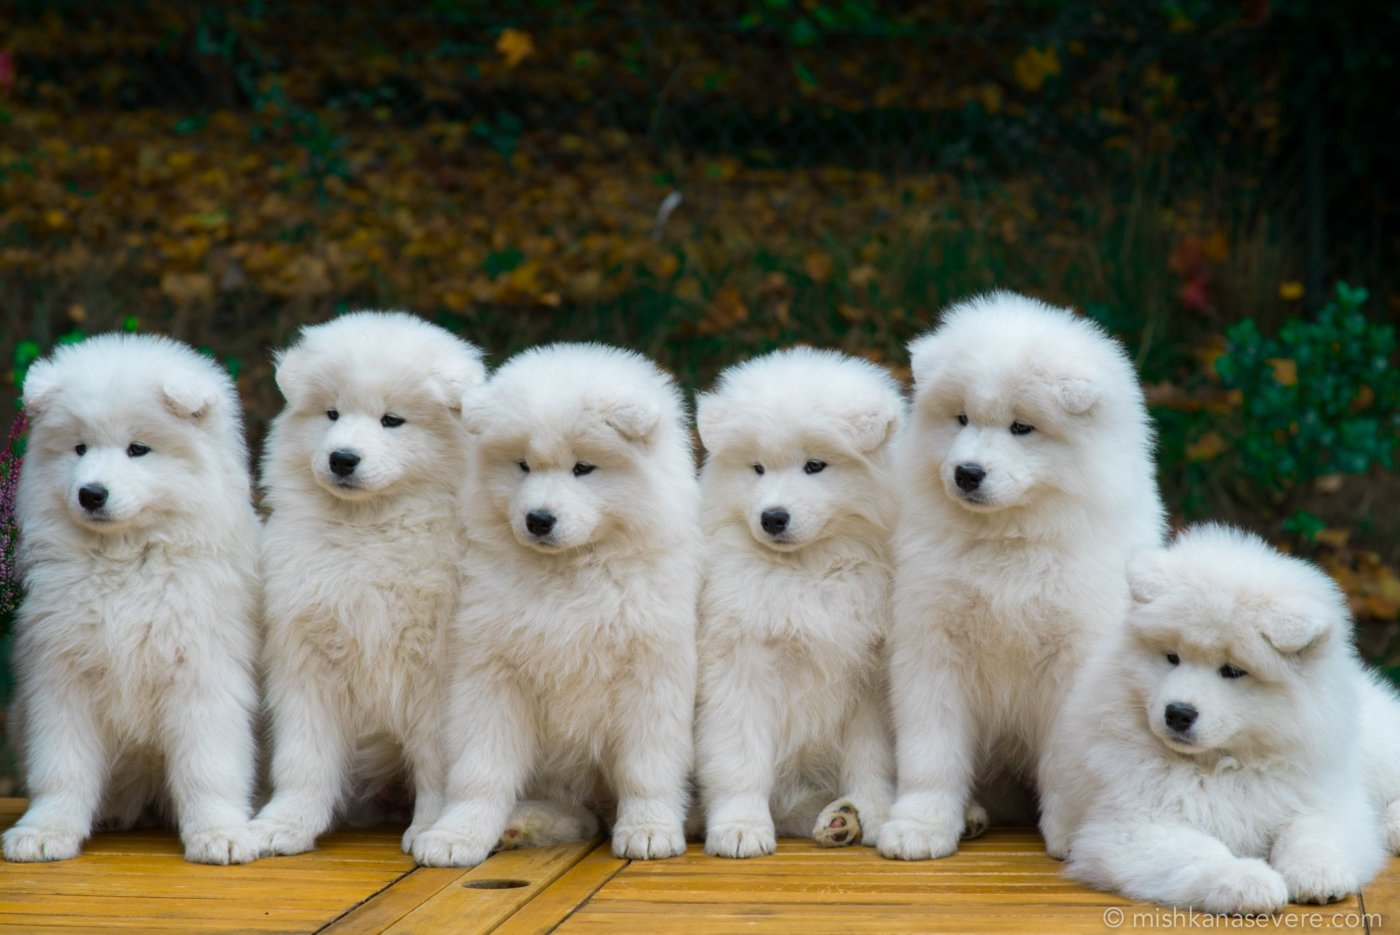 Samoyed puppies for sale - Samoyeds kennel Mishka na Severe